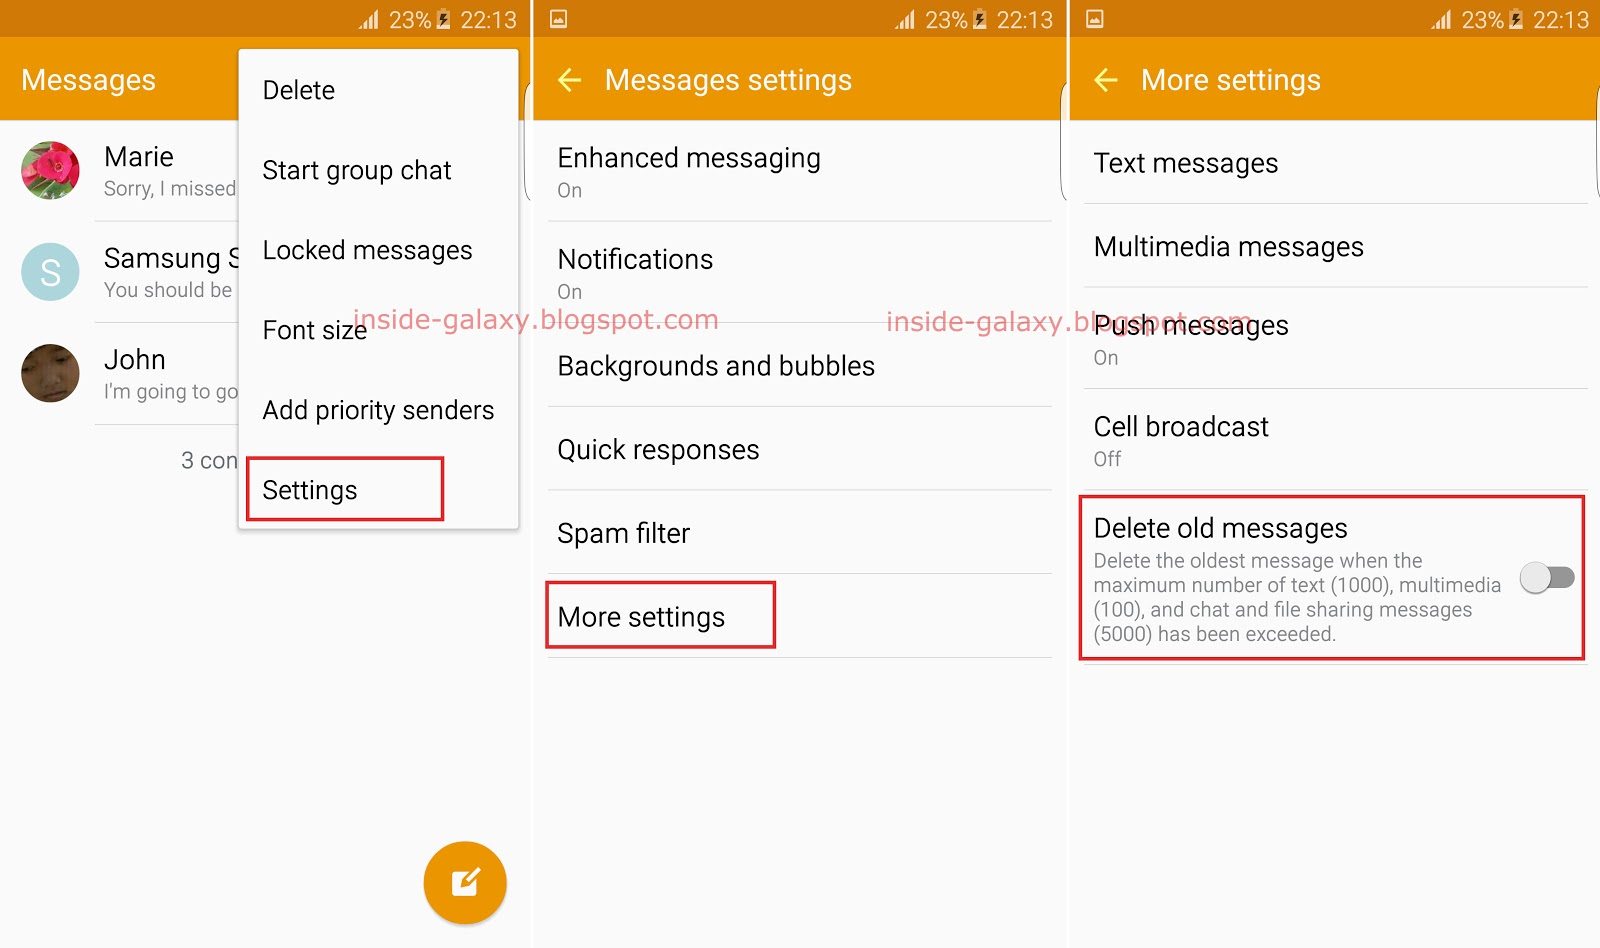 How To Use The Auto Delete Old Messages Feature In The Messages App? You  Can Do So By Using The Following Steps: